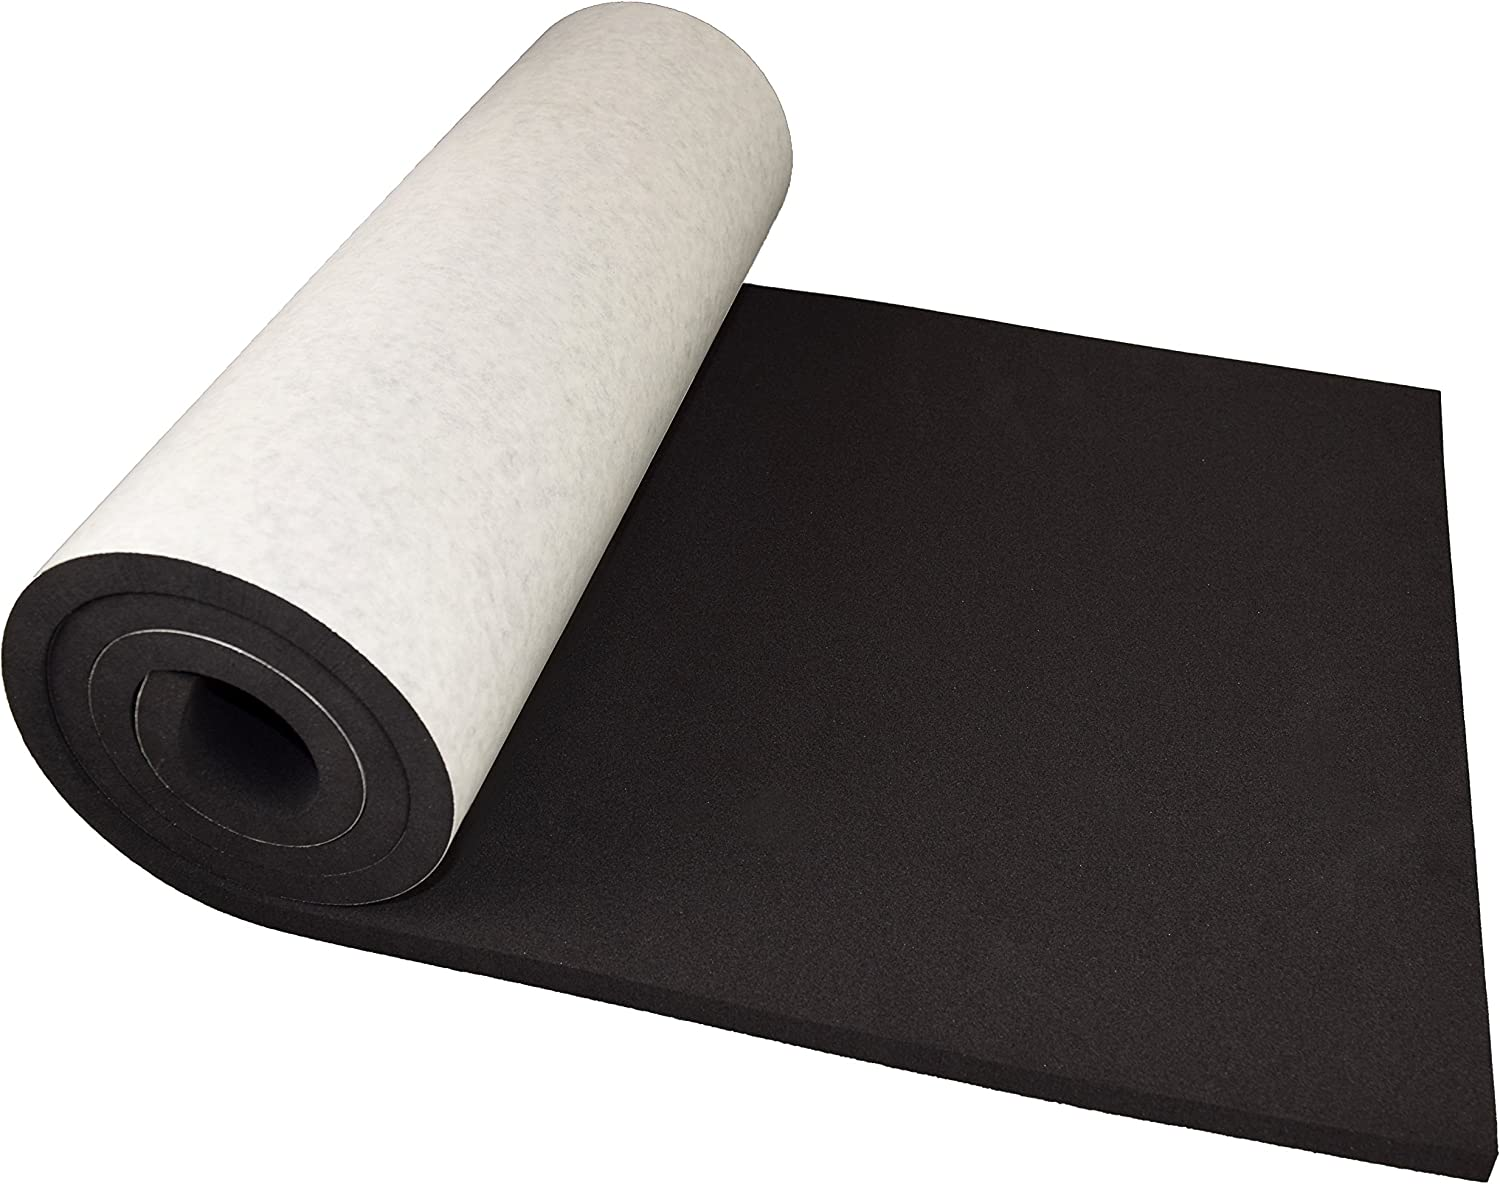 "XCEL Extra Large Marine Roll, Closed Cell Neoprene Rubber with Adhesive, Size 60"" x 16"" x 1/2"", Easy Cut Material, Water and Weather Resistant, Made in USA"